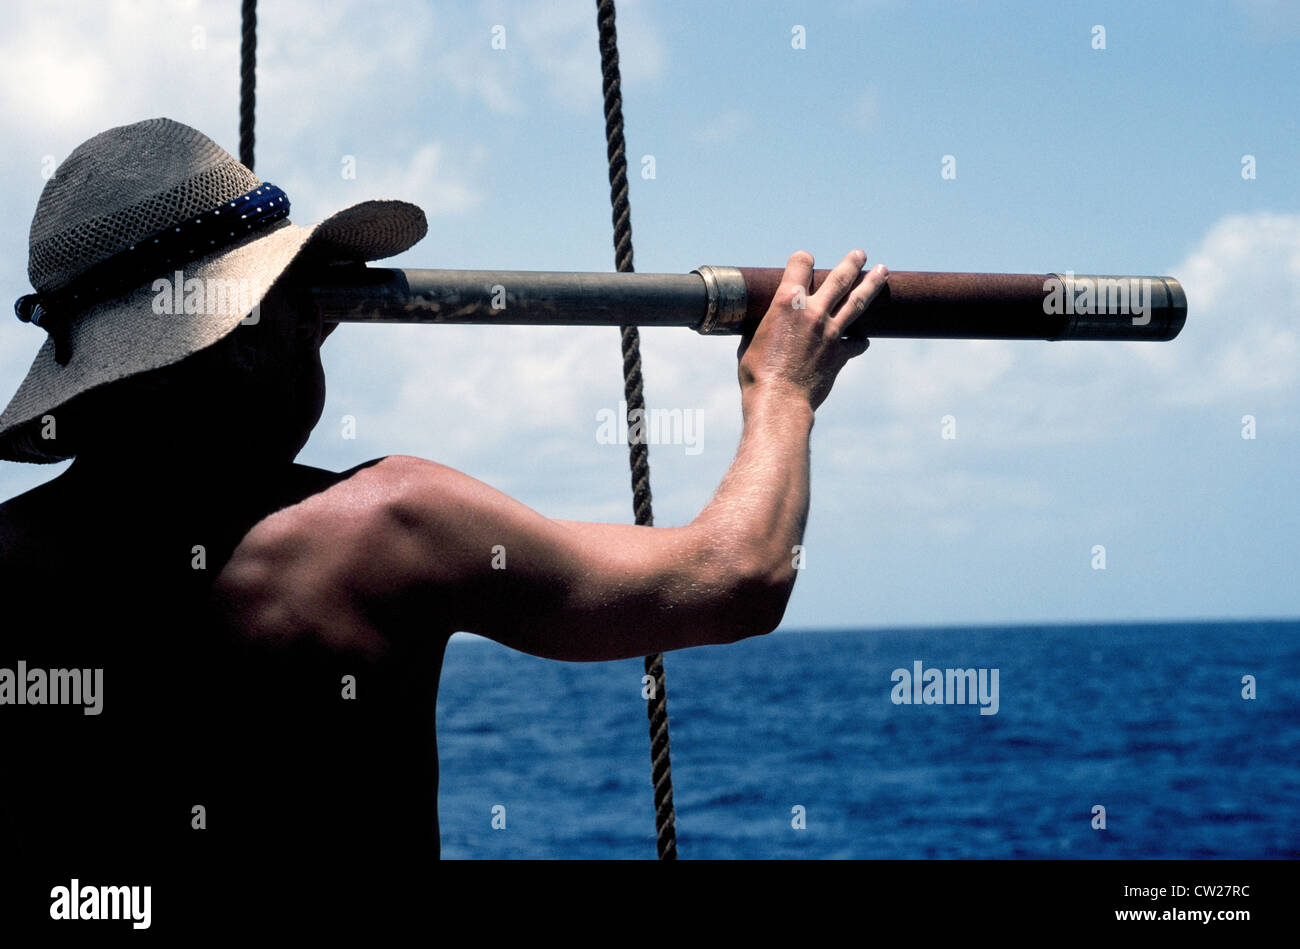 A young man with a long telescope is literally 'looking to the future' as he scans the sea from the deck - Stock Image